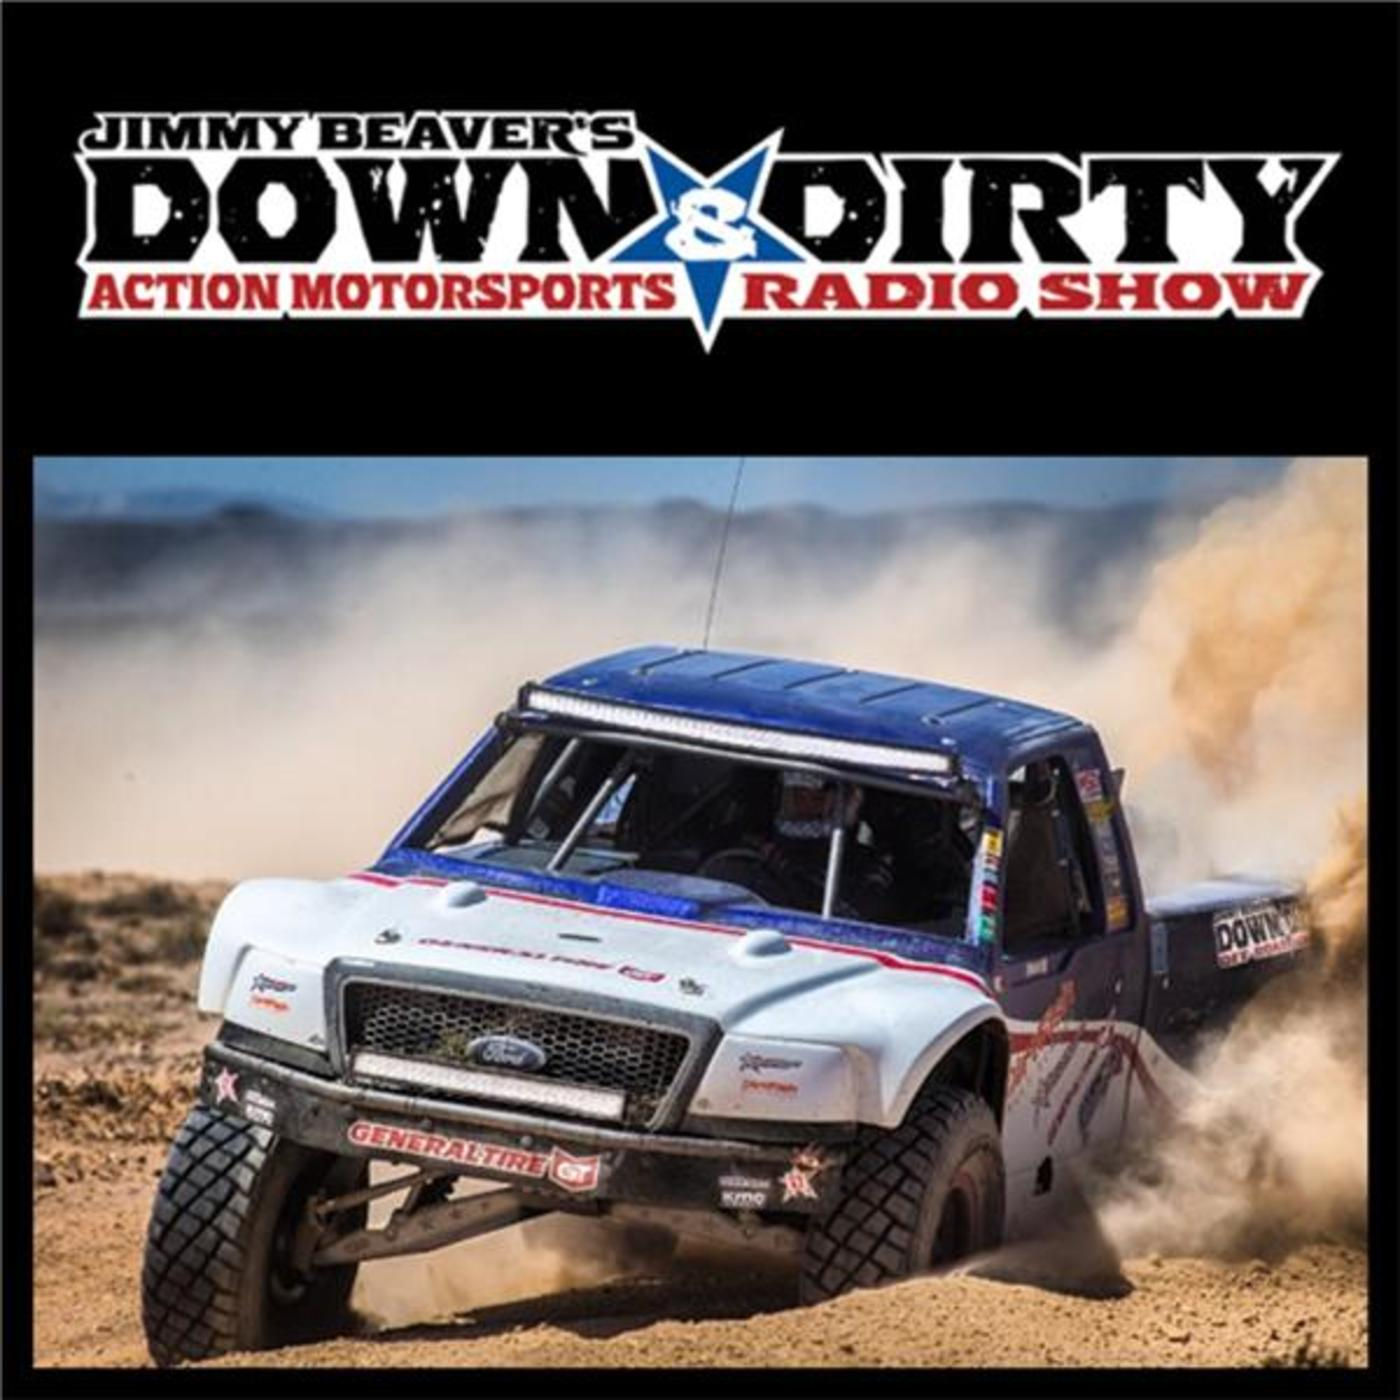 The Down & Dirty Radio Show